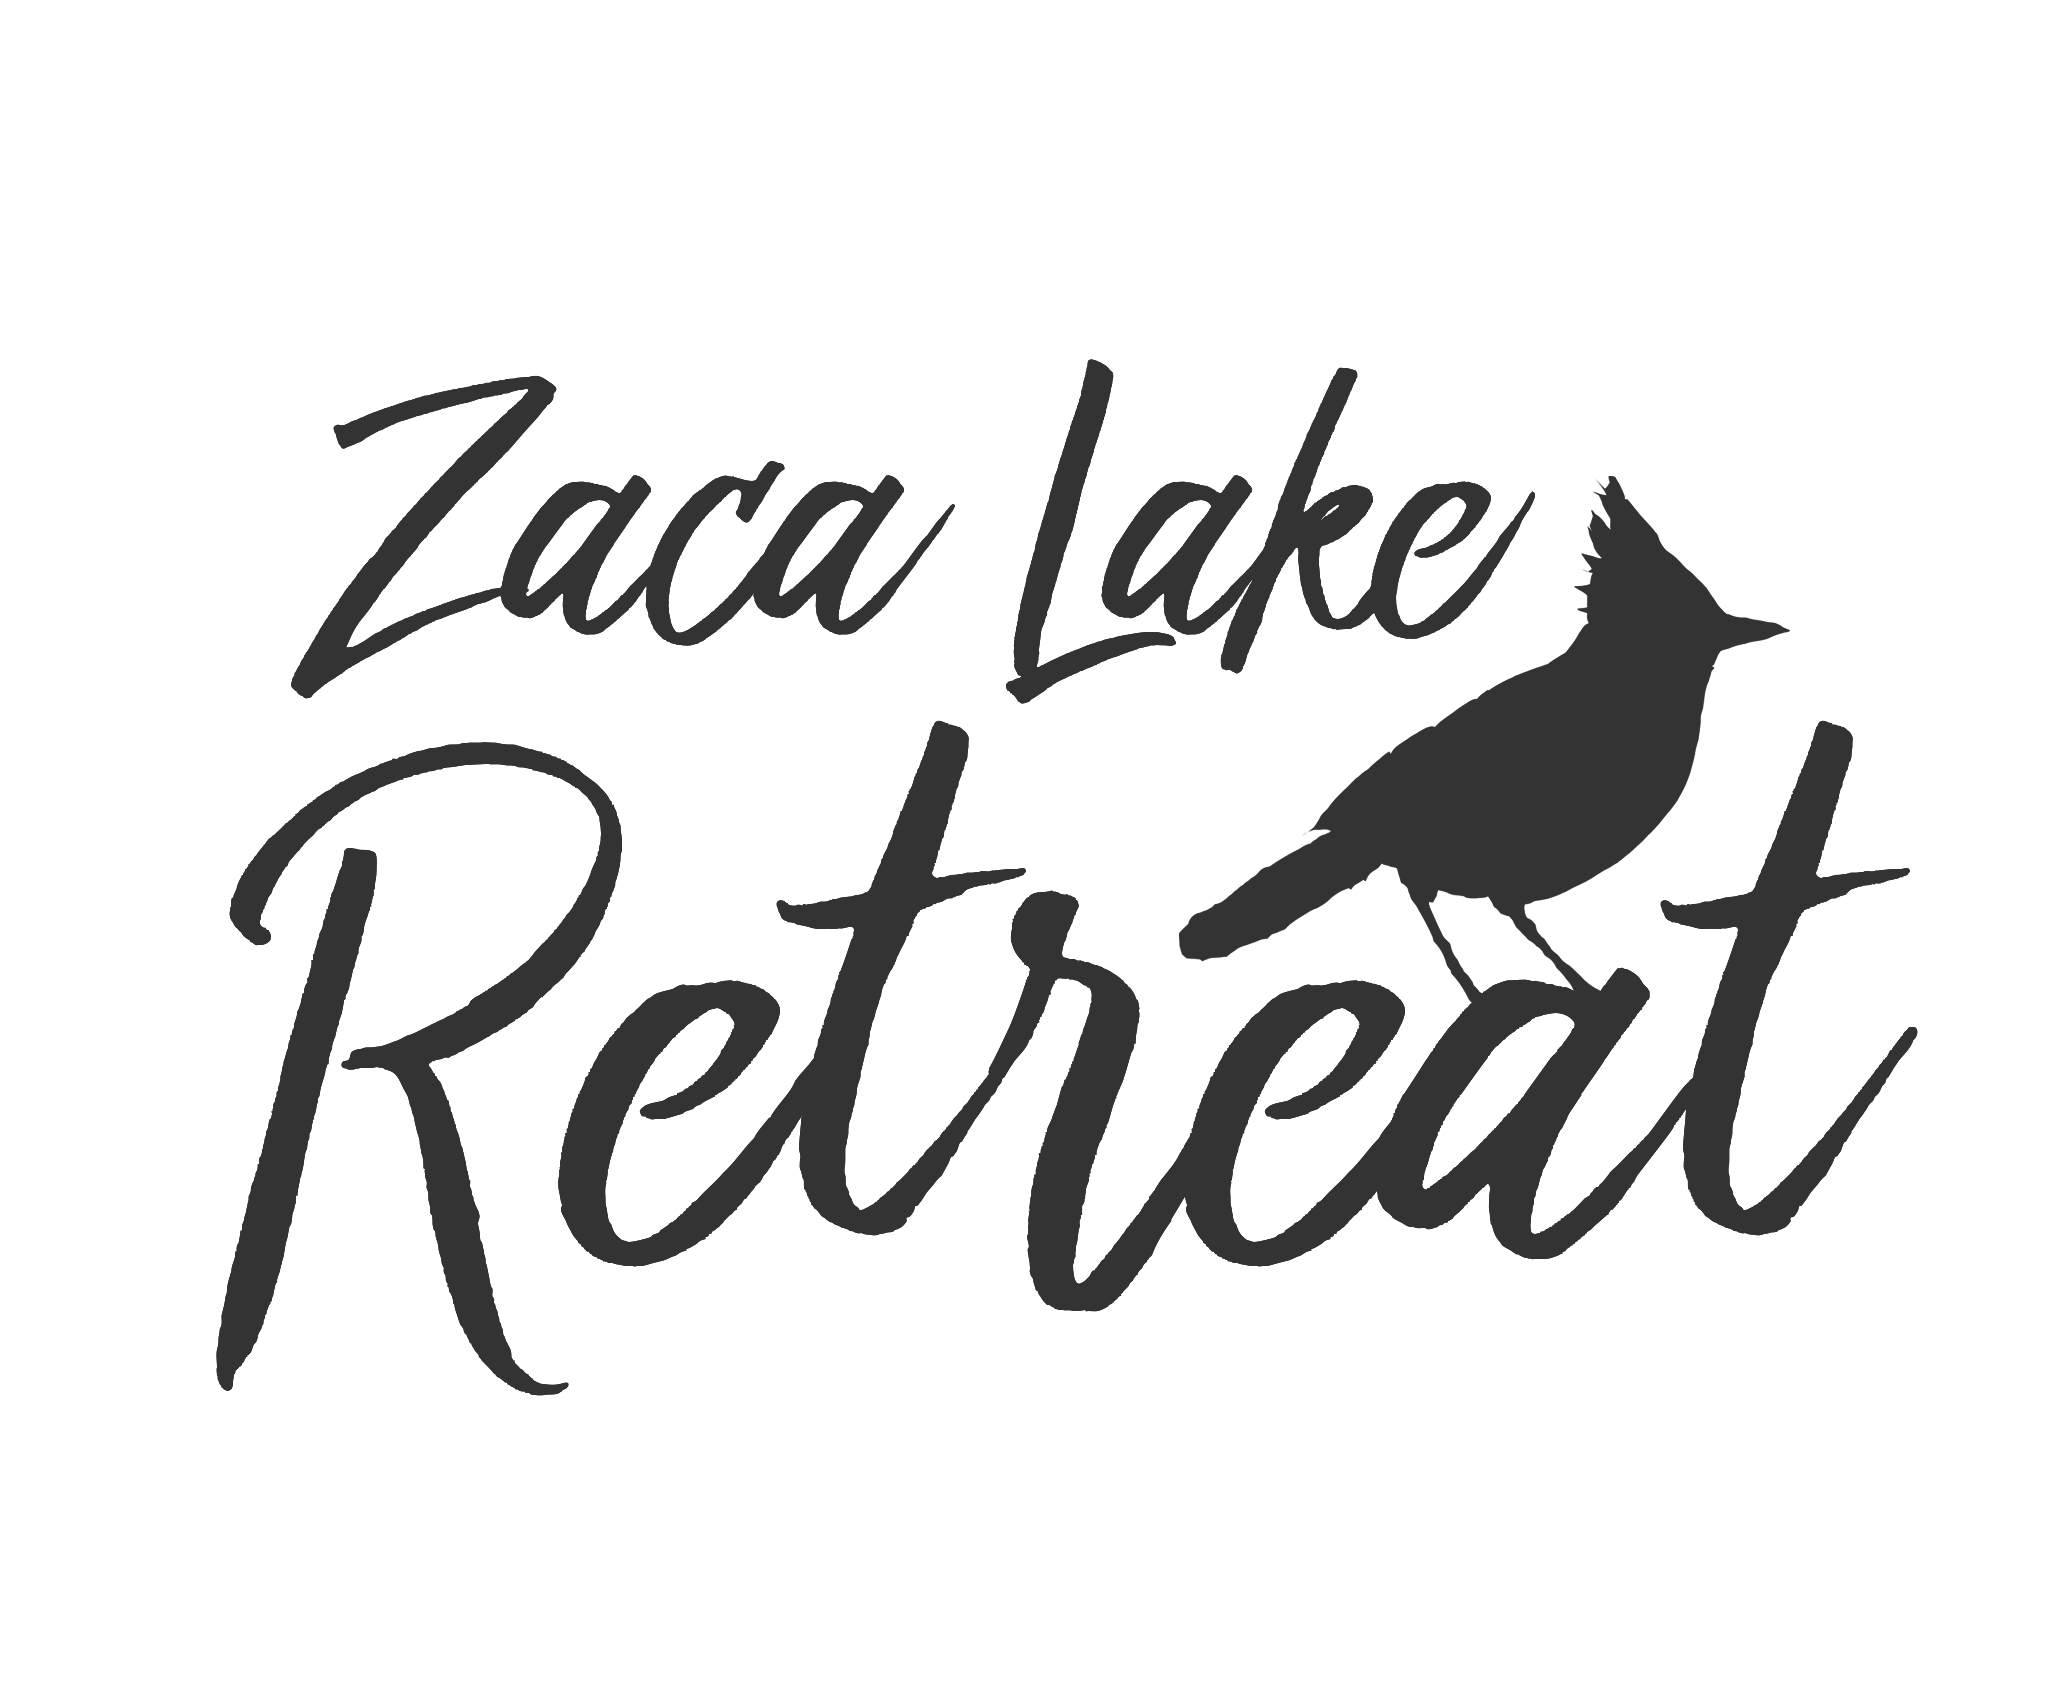 Zaca Logo - Full Size (PNG Transparency).png